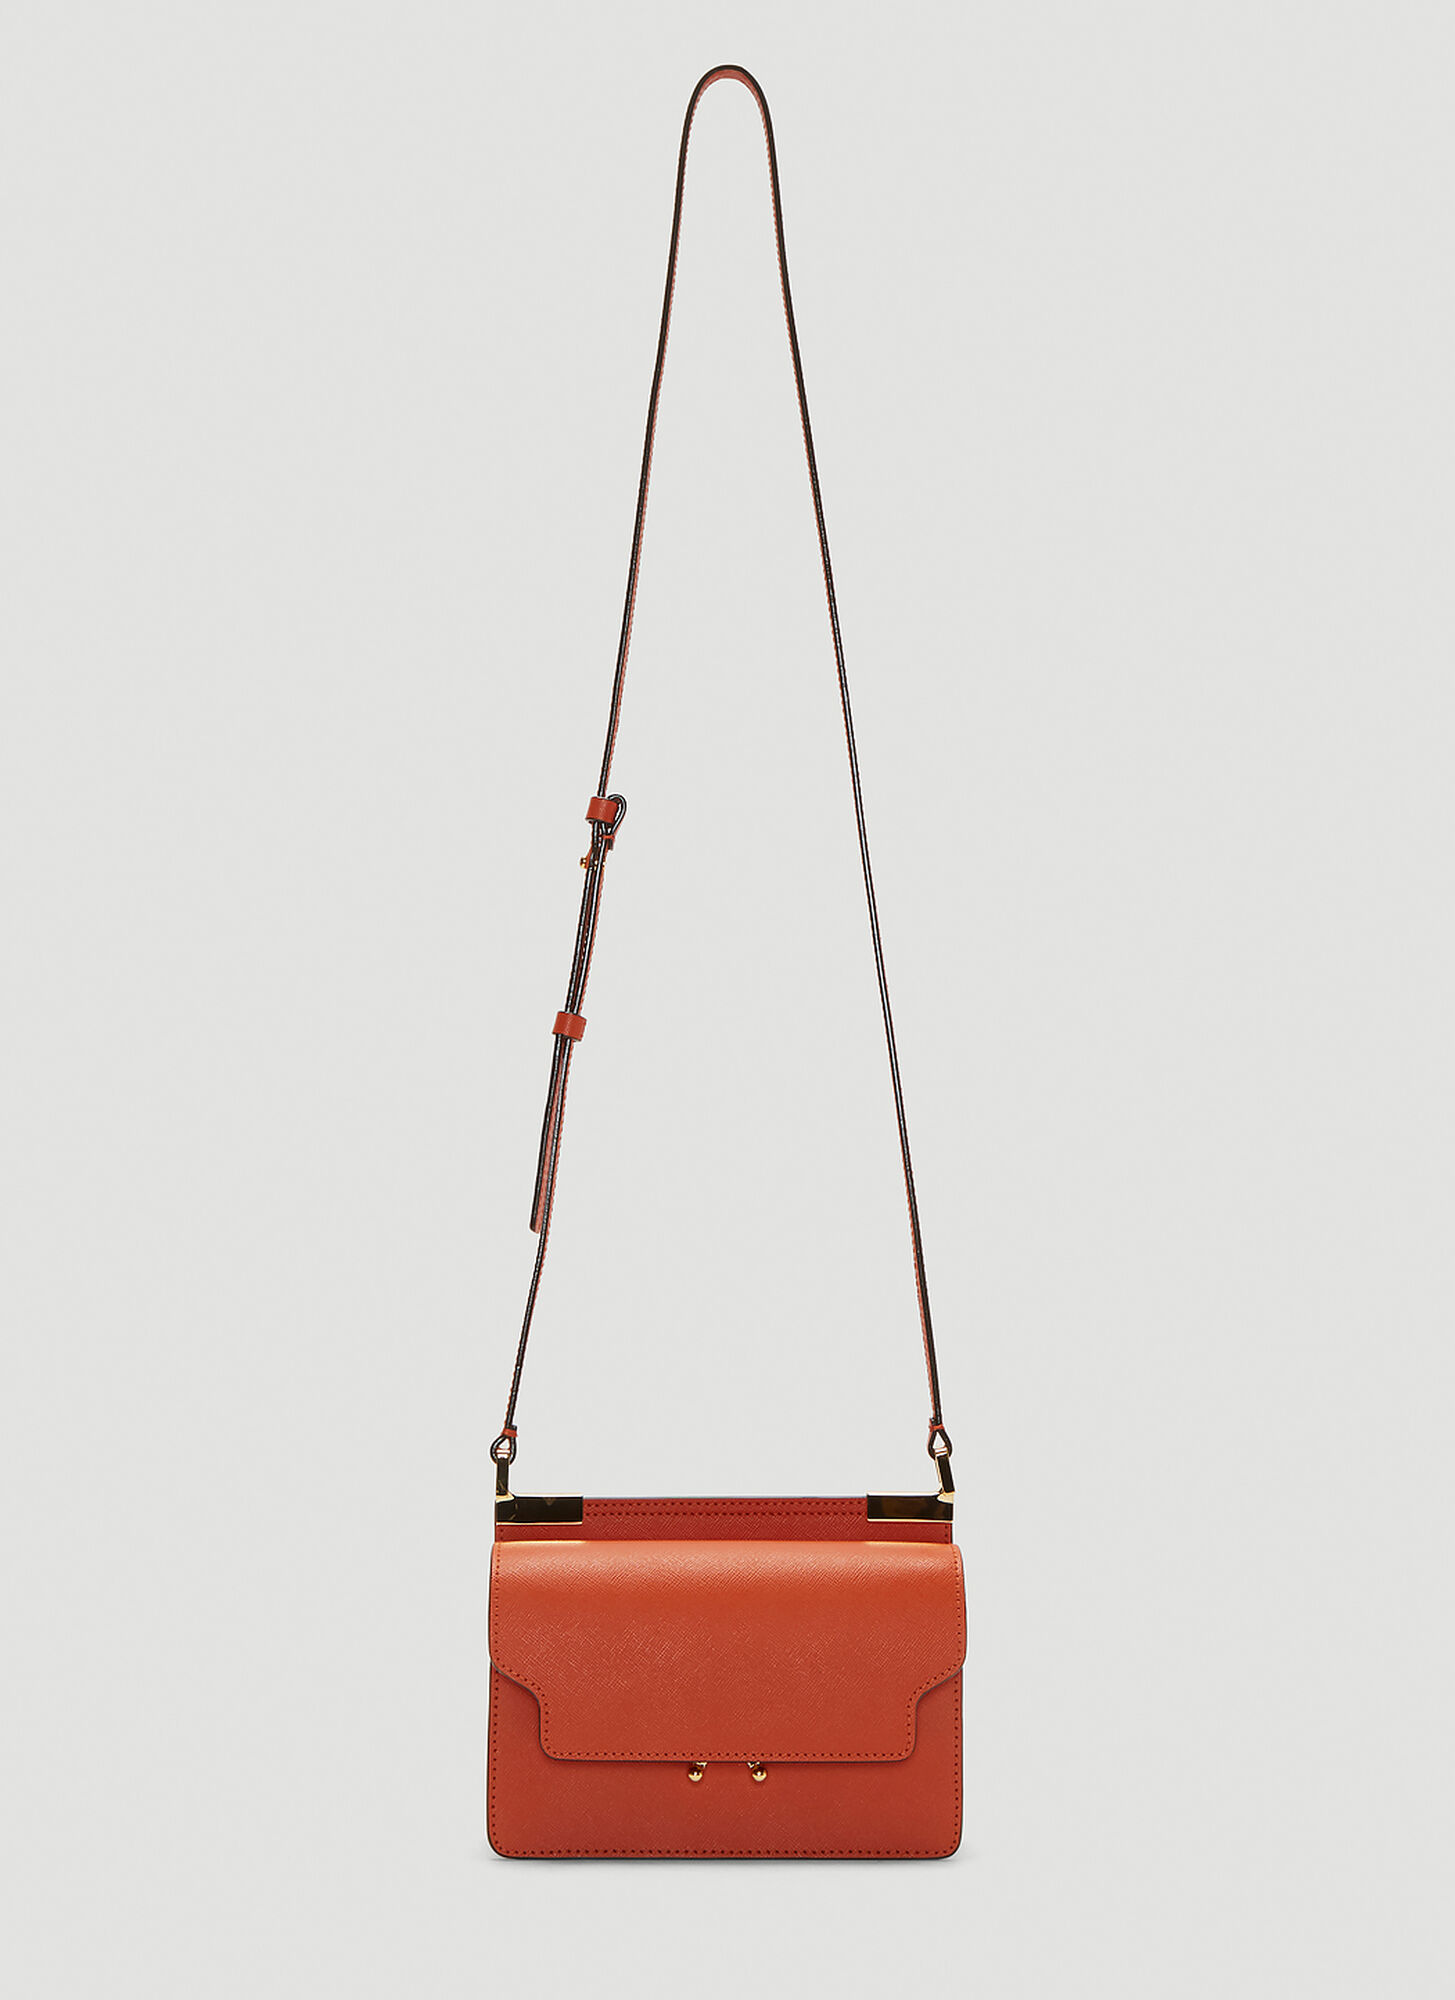 Marni Slim Mini Trunk Bag in Orange